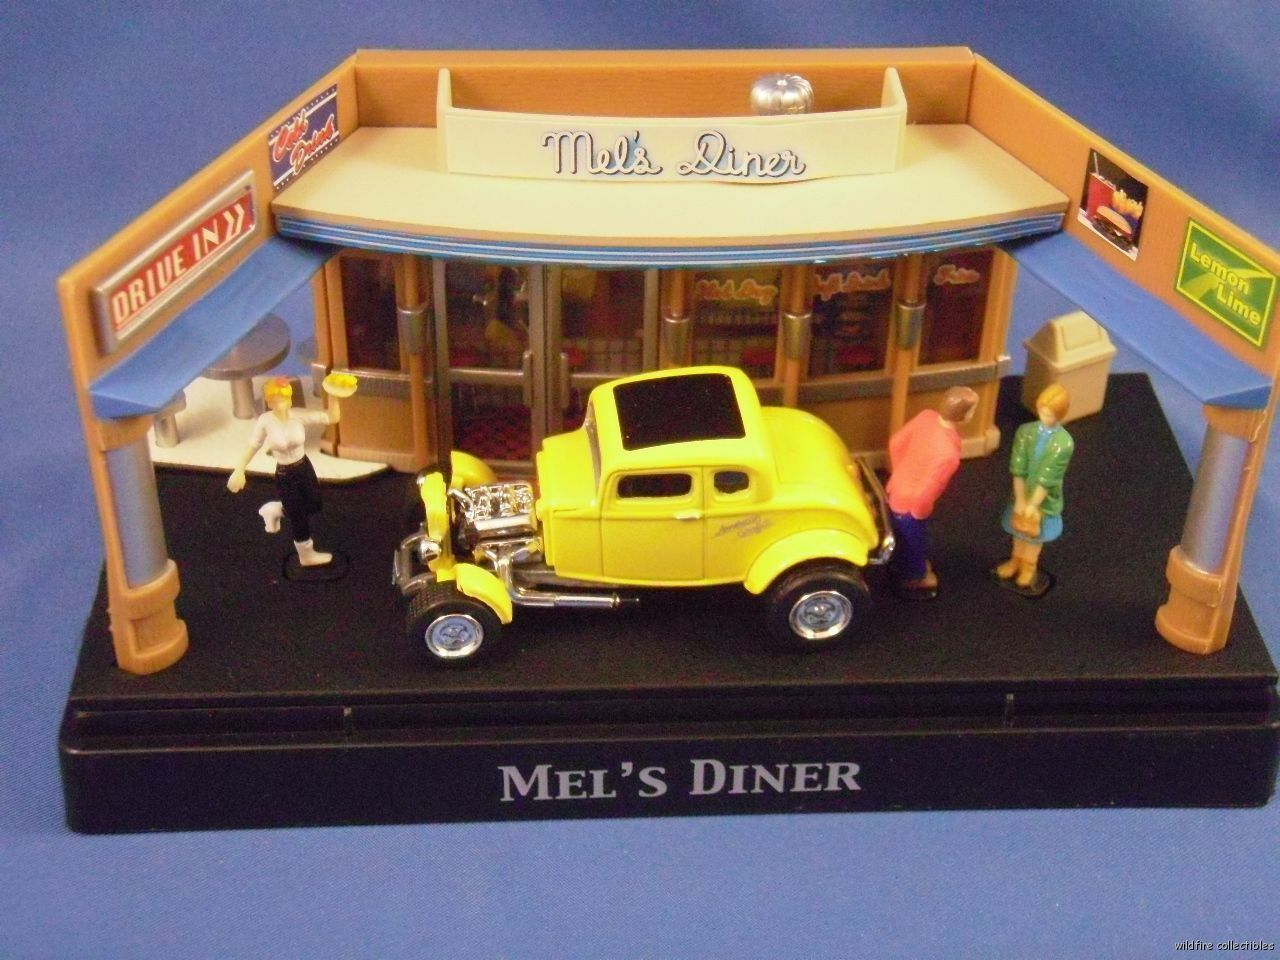 AMERICAN GRAFFITI MOVIE DIORAMA DIECAST 1 64 64 64 1932 FORD COUPE DIECAST MEL'S DINER 0ef41d